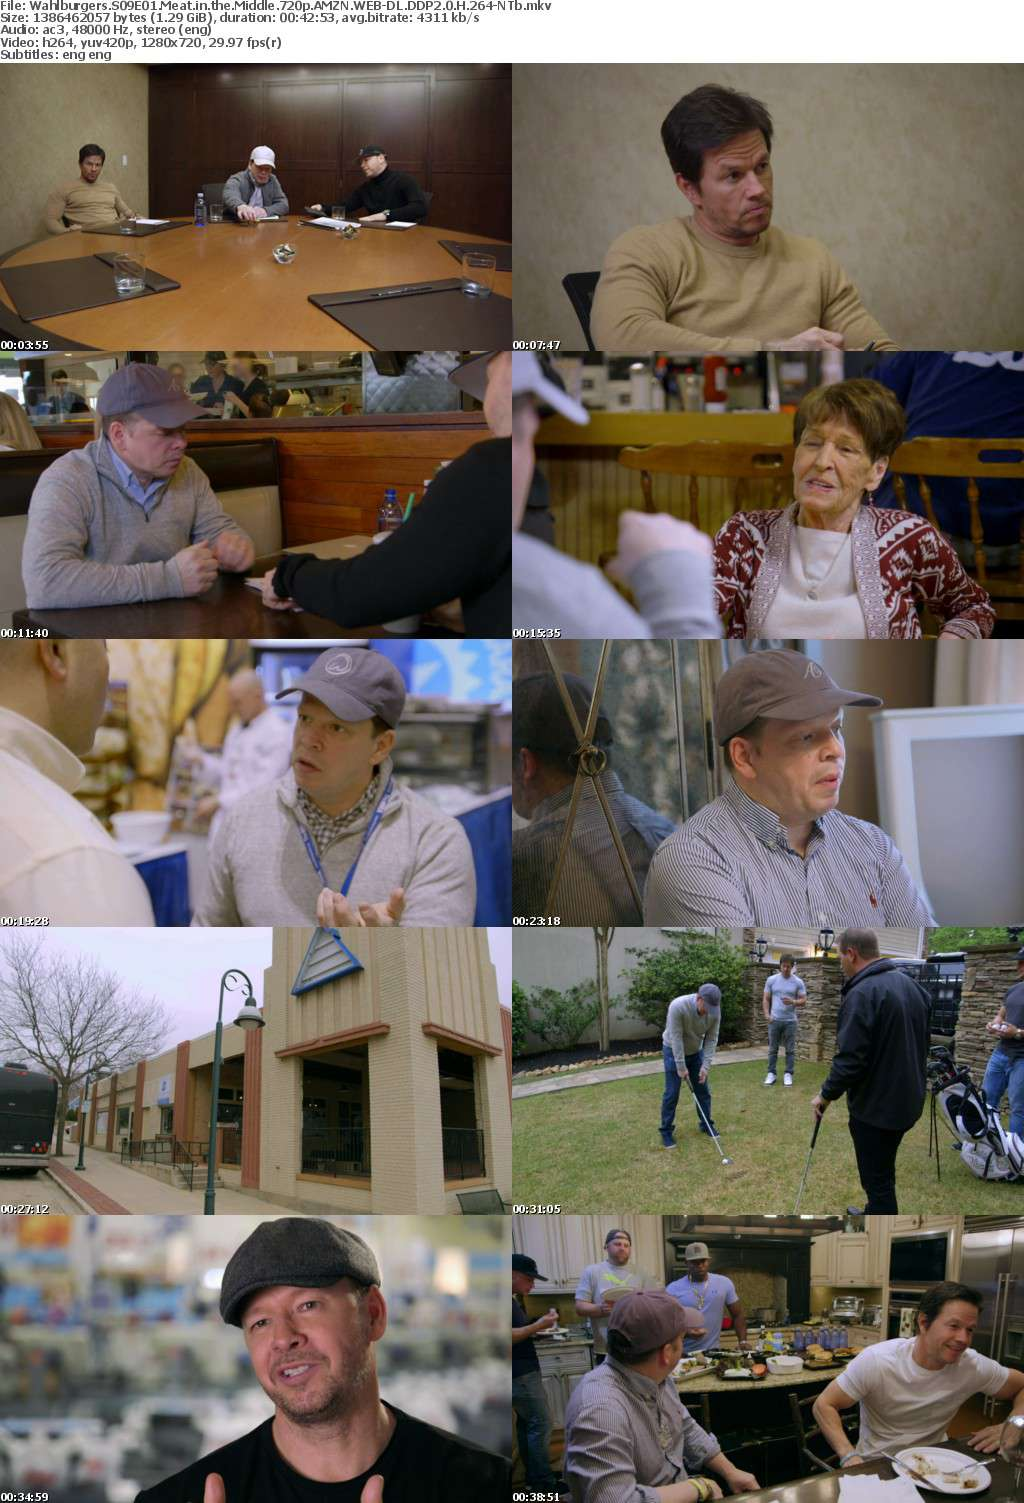 Wahlburgers S09E01 Meat in the Middle 720p AMZN WEB-DL DDP2 0 H 264-NTb